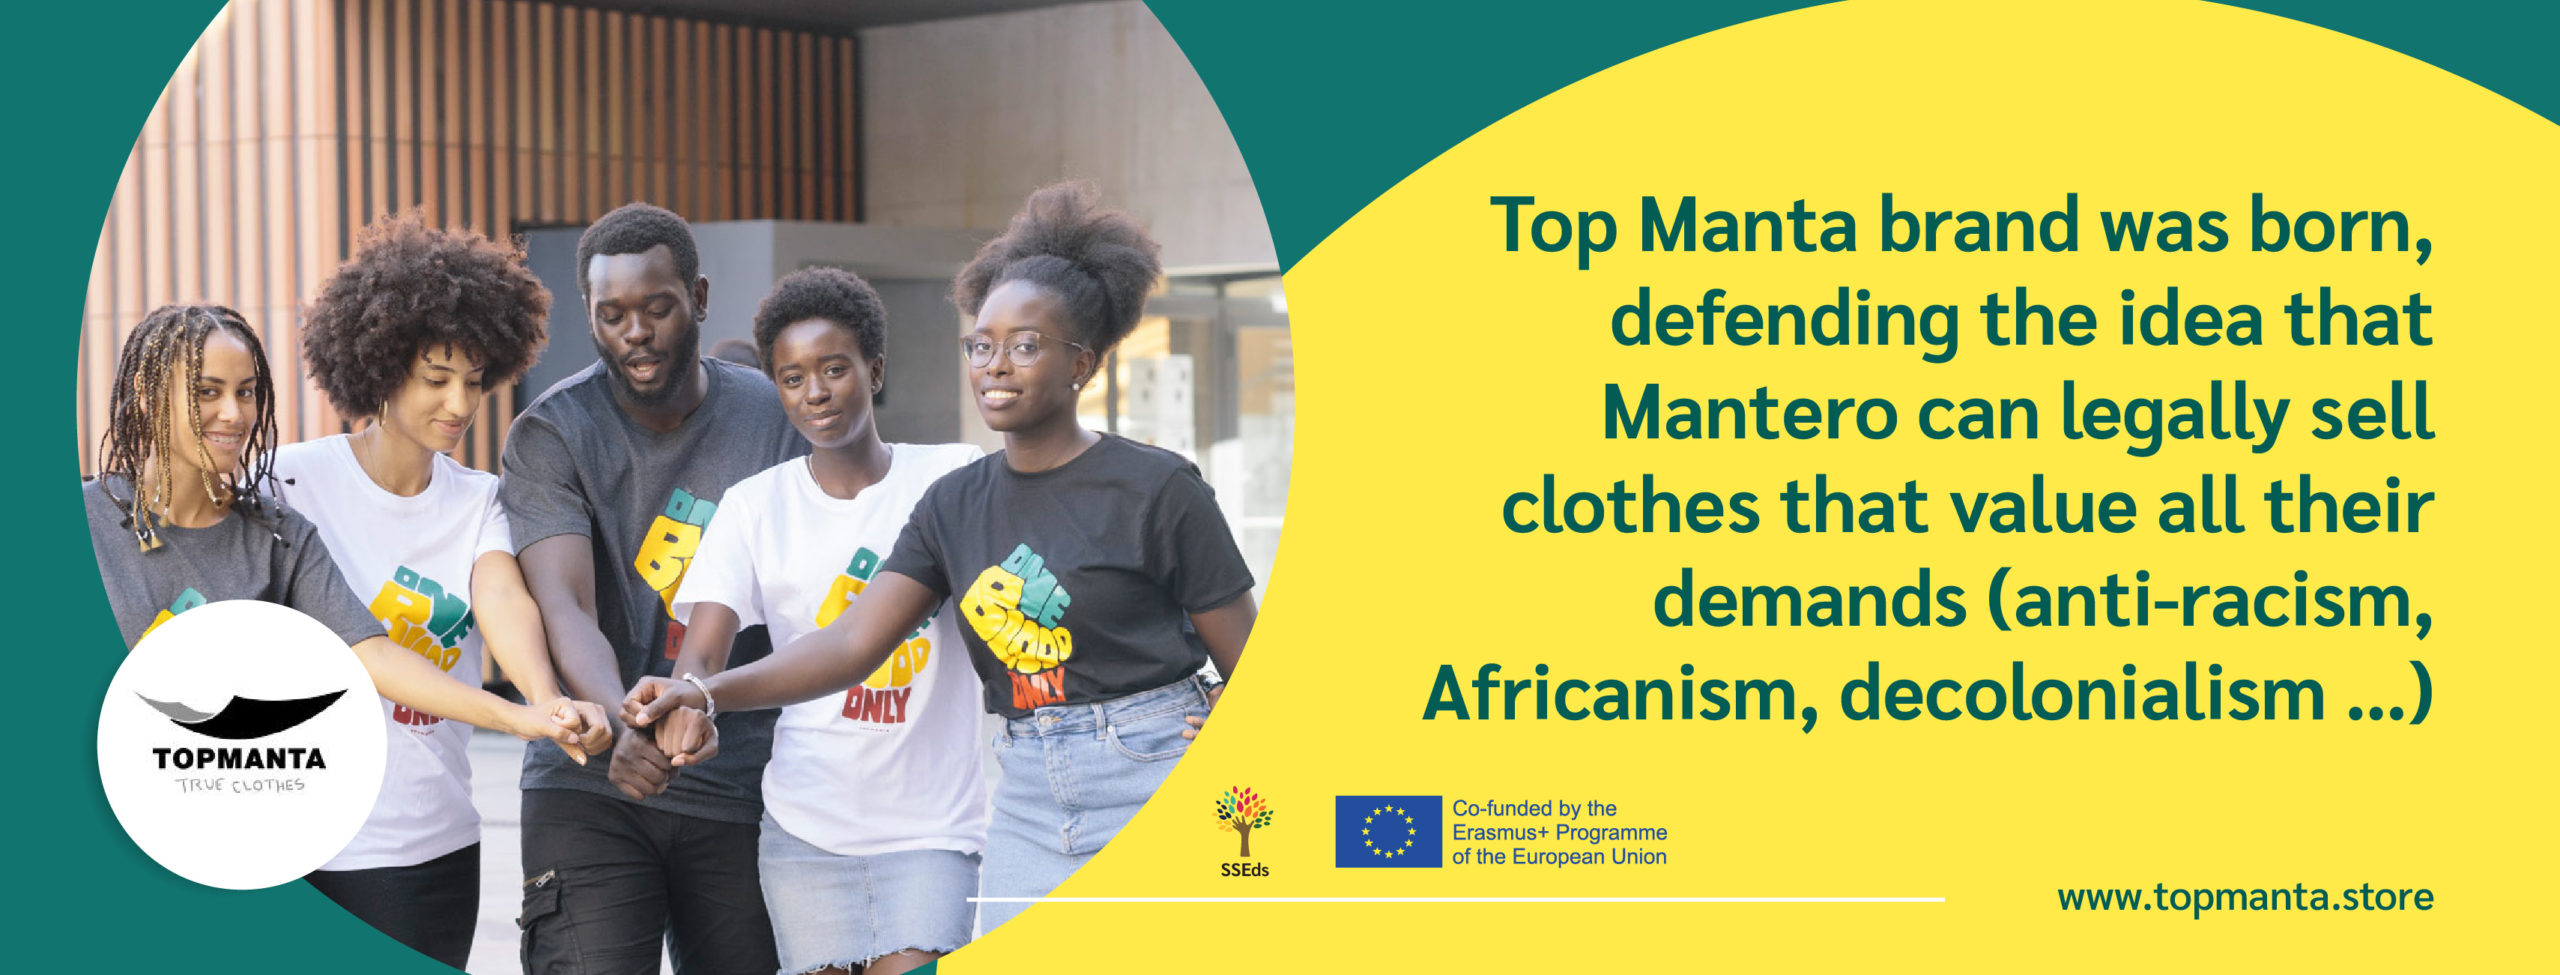 Legal clothing made by people in an illegal situation: Top Manta